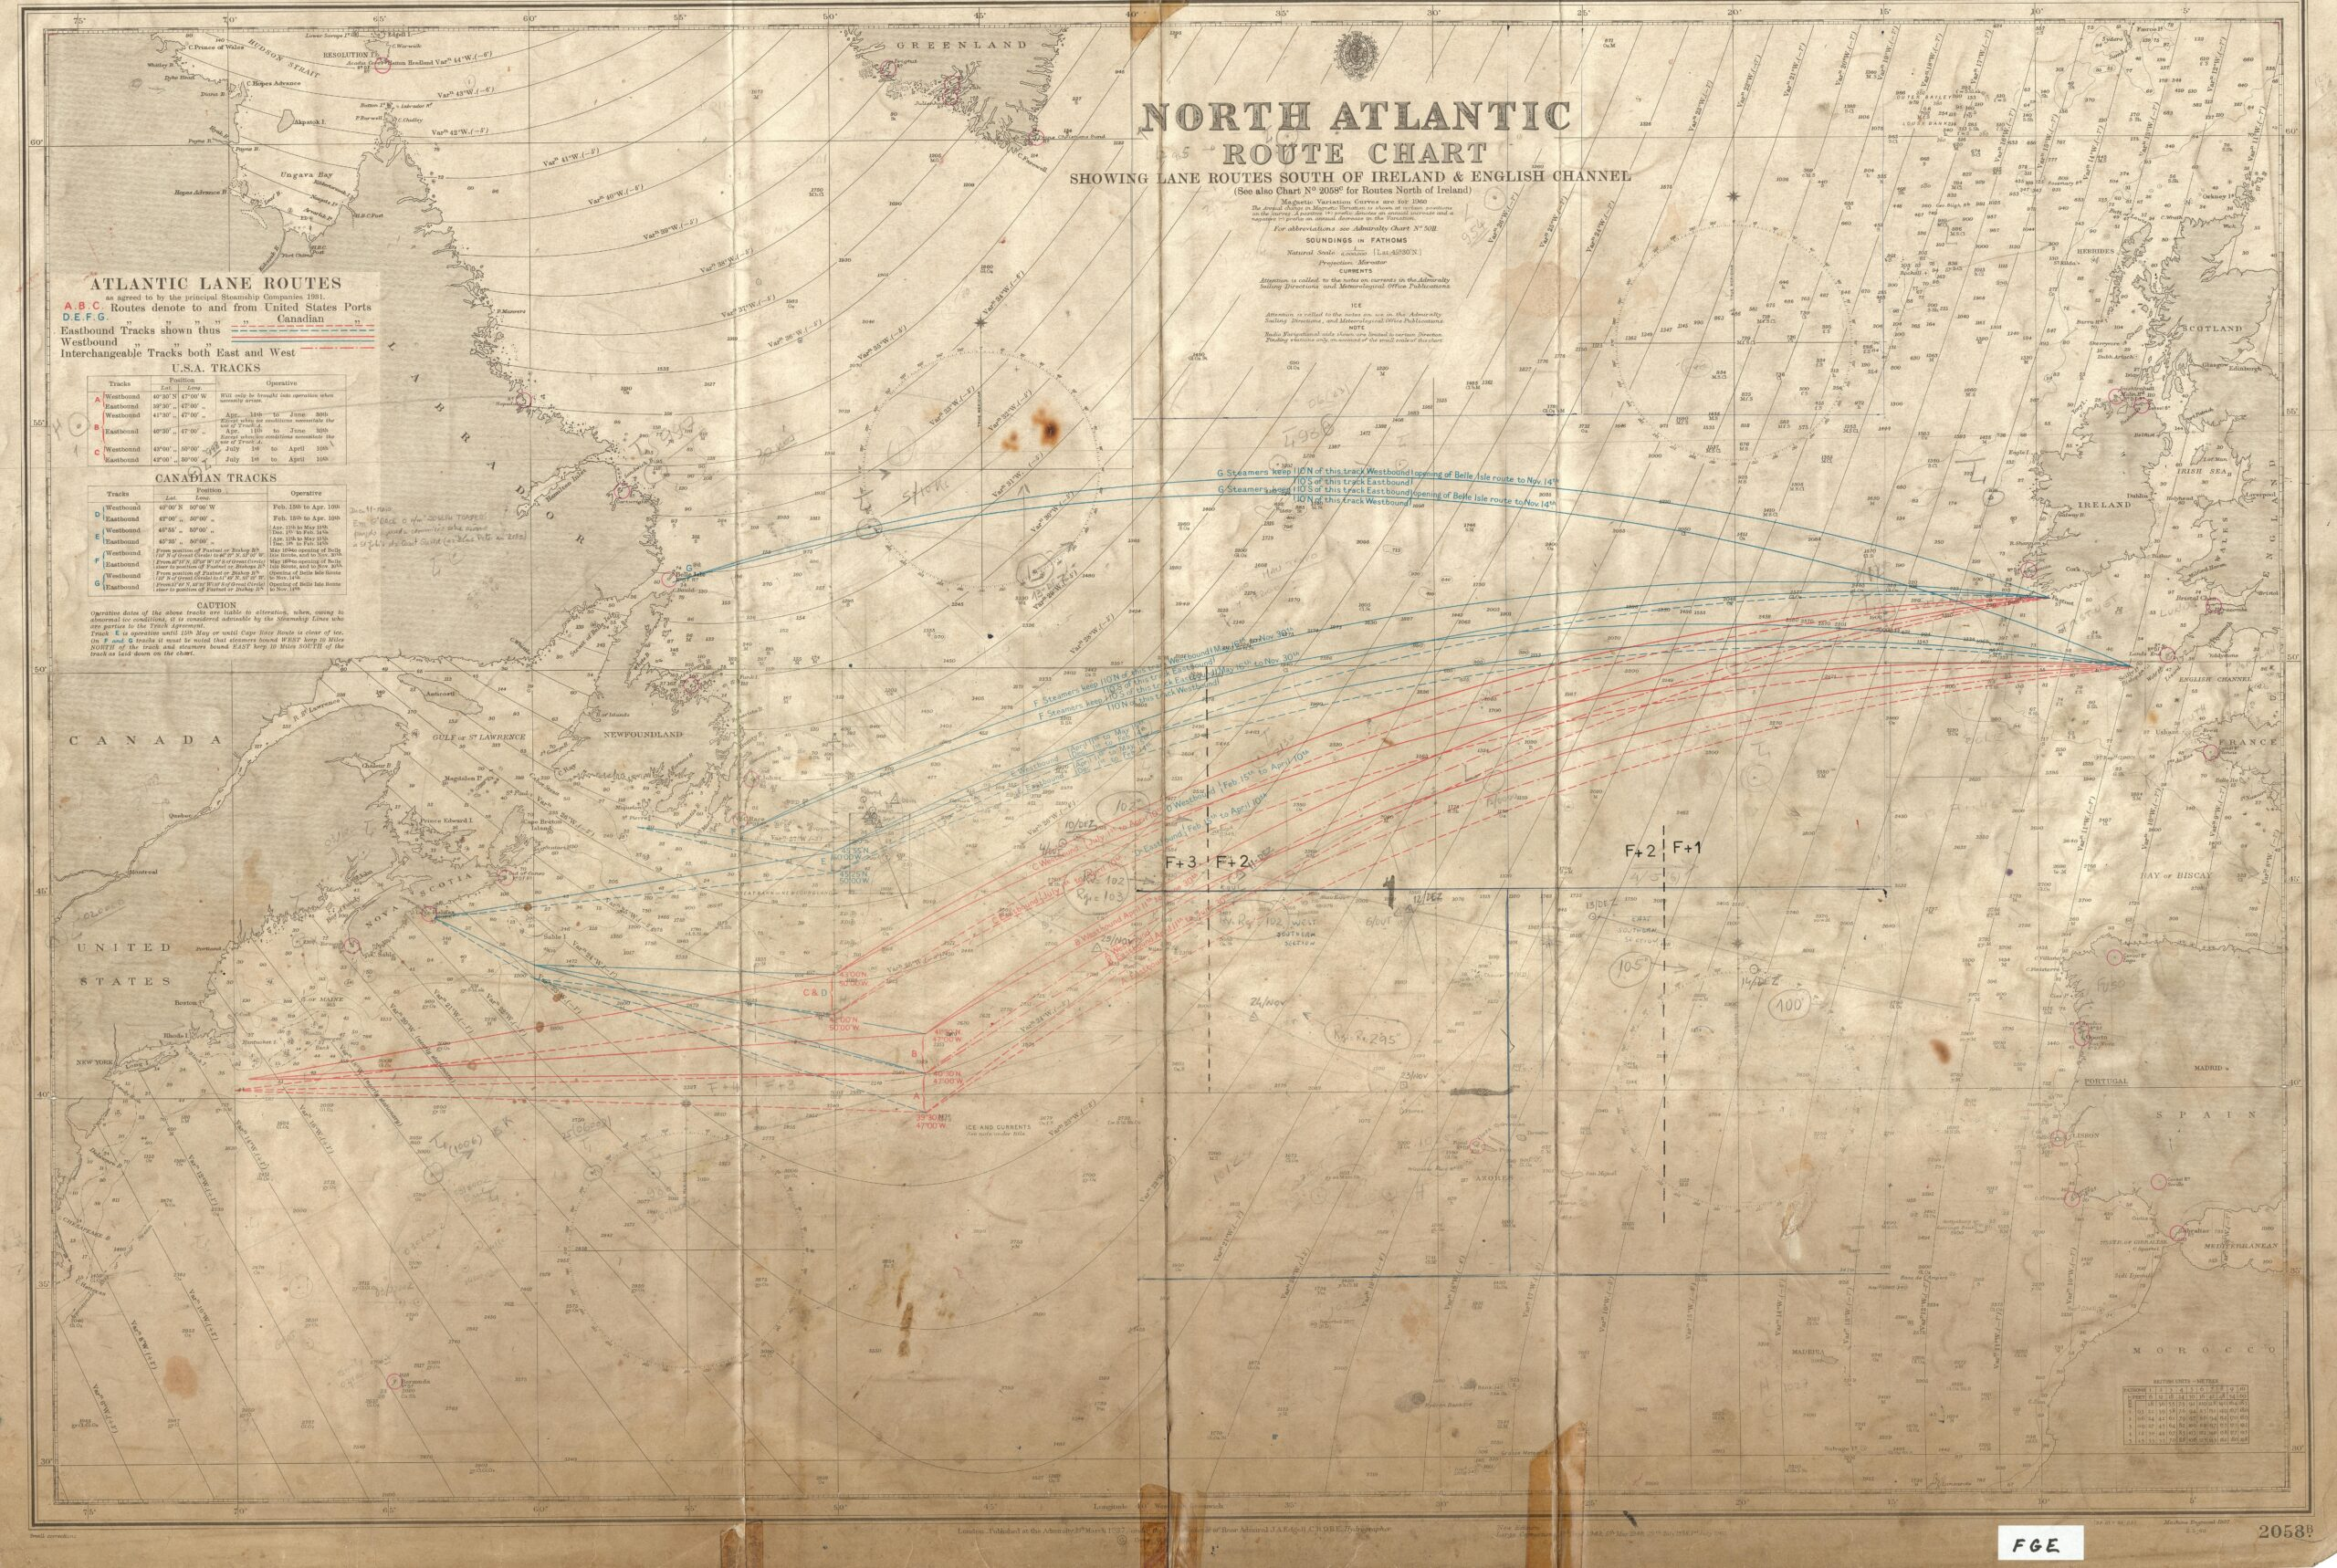 North Atlantic – route chart – showing lanes routes south of Ireland & english channel